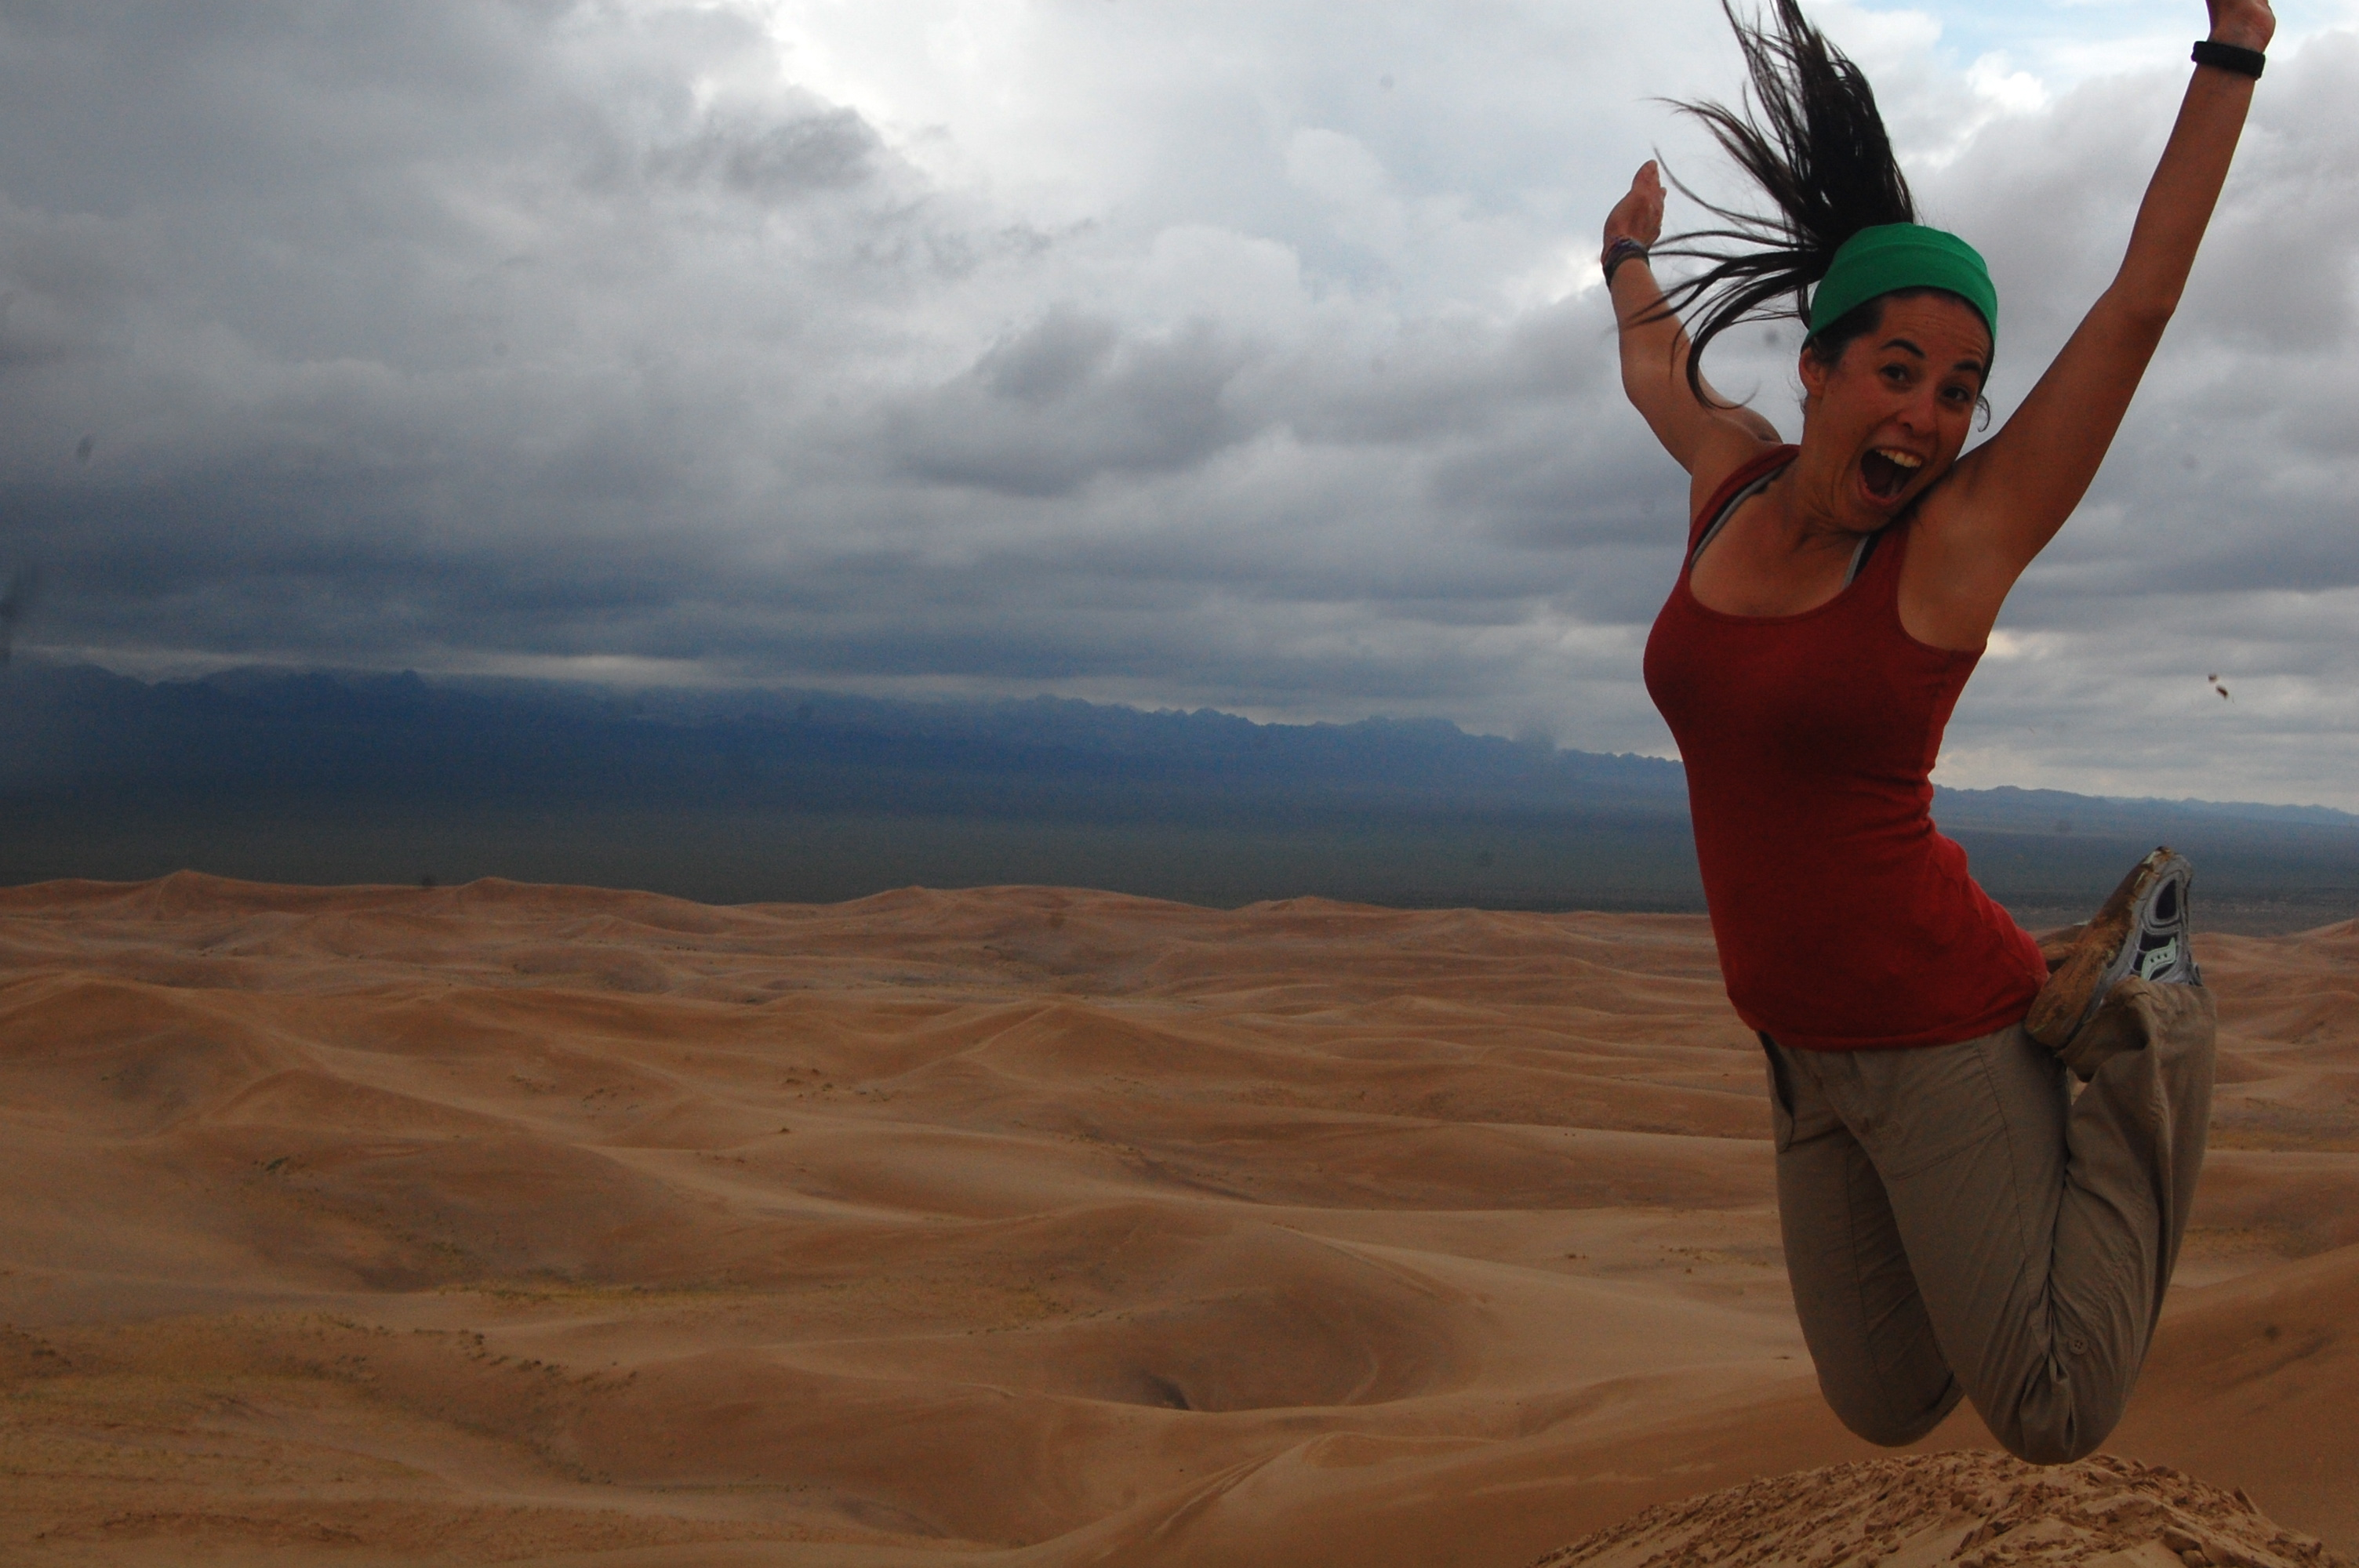 Jumping over the sand dunes of the Gobi Desert in Mongolia